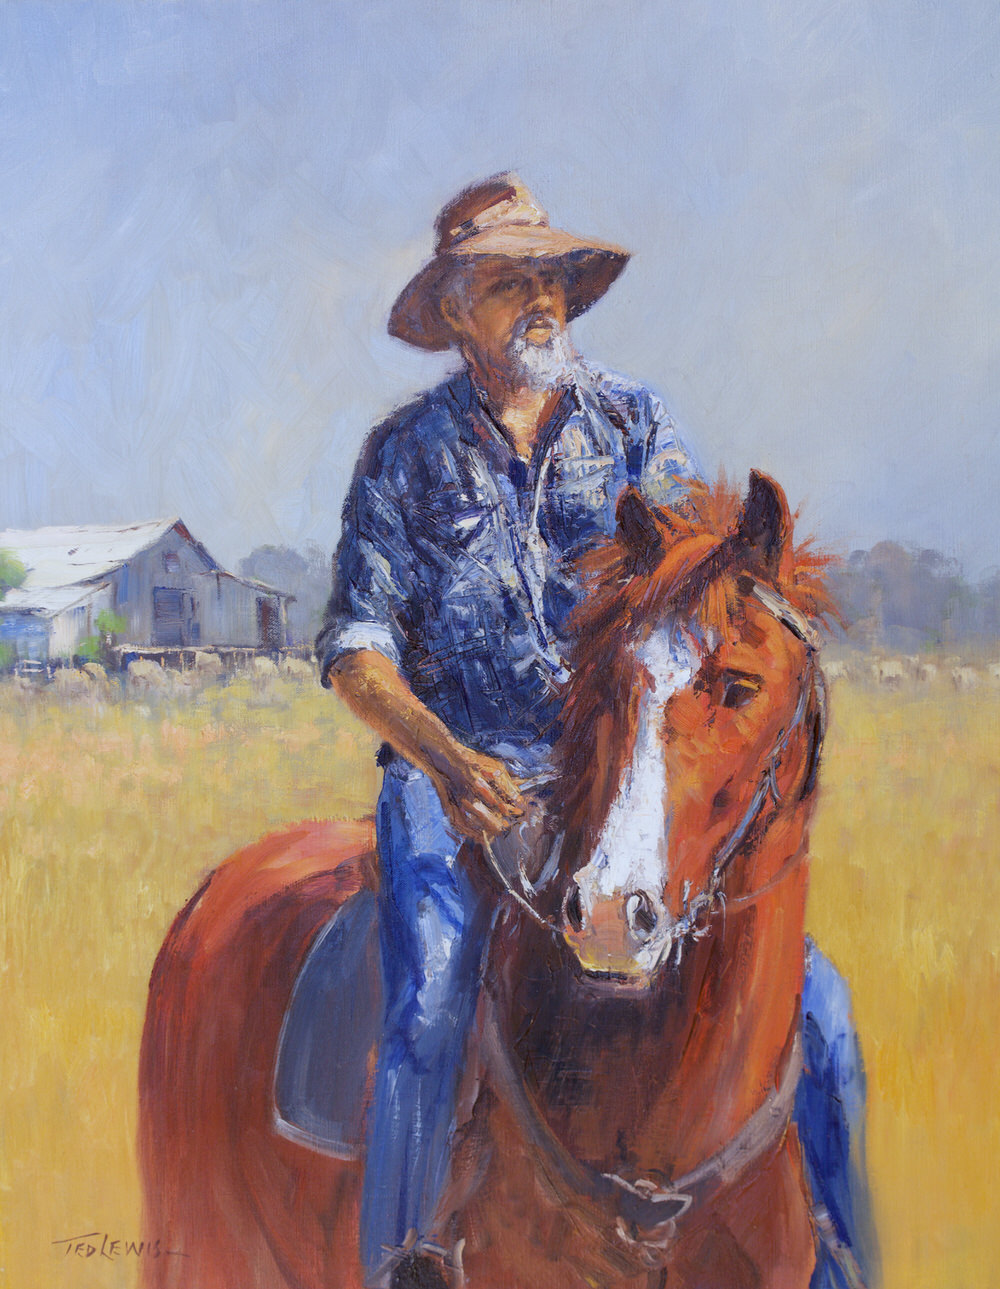 #15269 Ted Lewis 'Clancy's Mate' oil 76x60